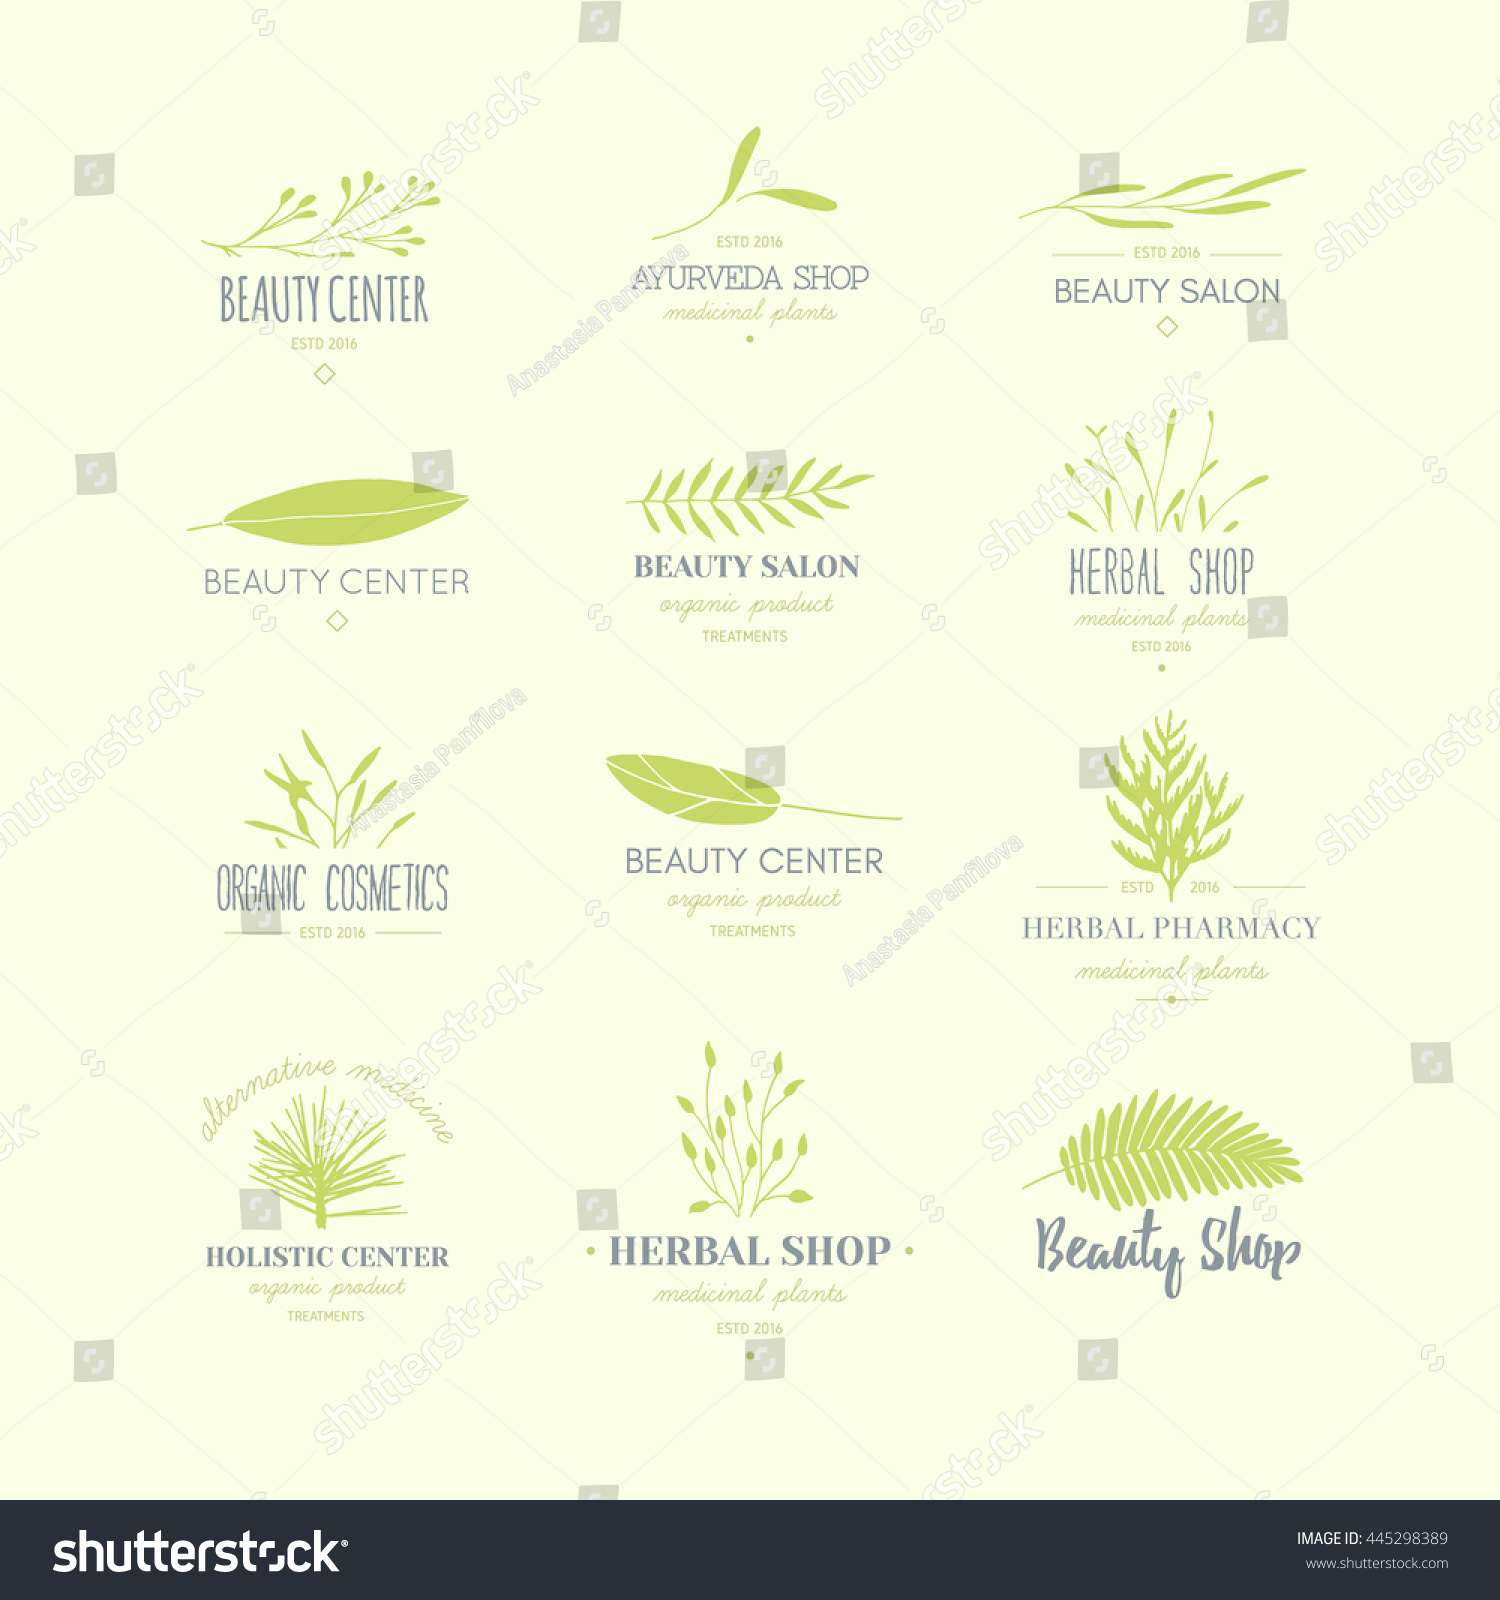 Collection Of Hand Drawn Logotypes: Vector Trendy Hand Drawn Beauty, Organic Cosmetics